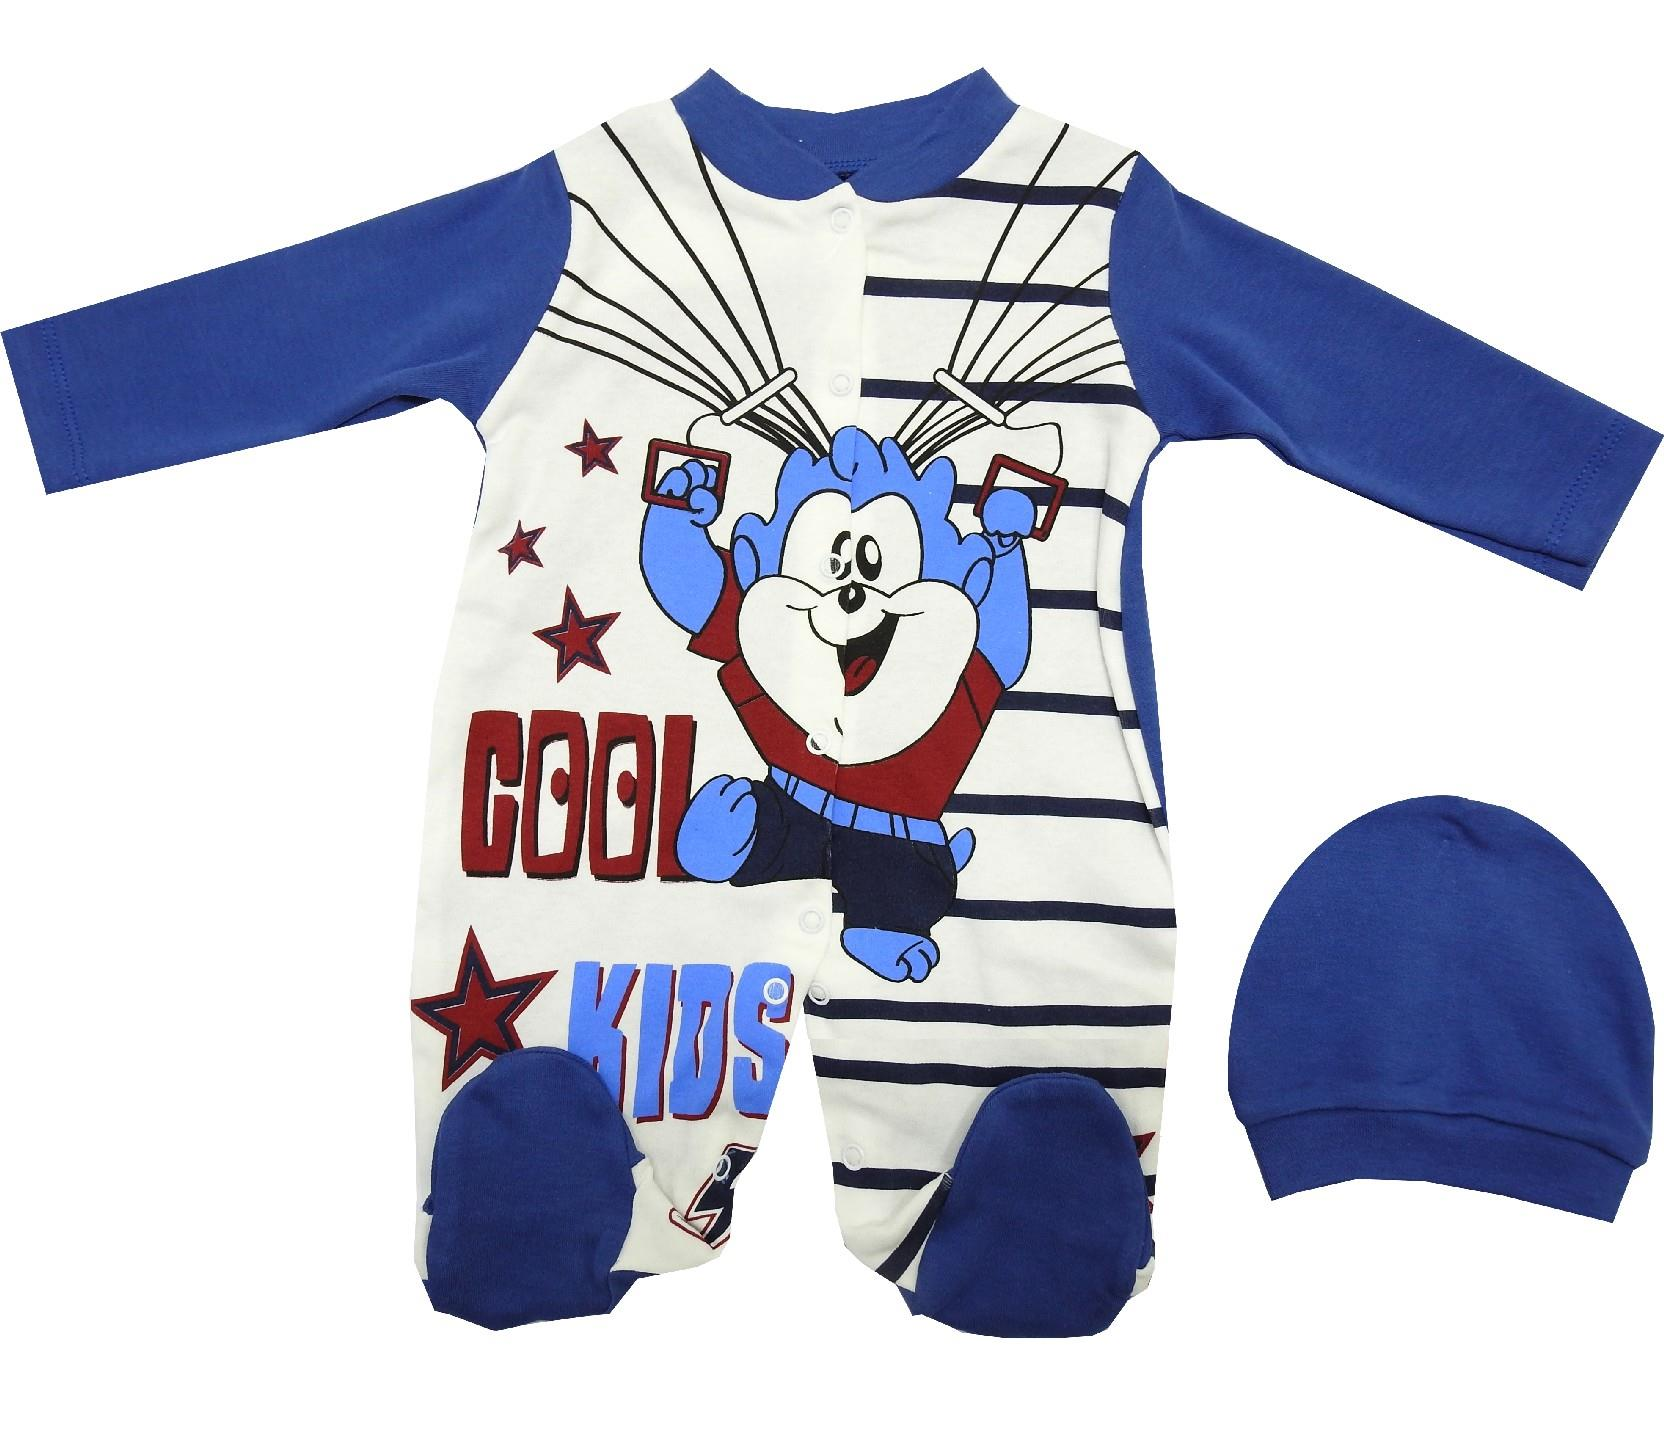 WHOLESALE COOL KIDS PRINTED BODYSUIT FOR BOY (3-6-9 MONTH)